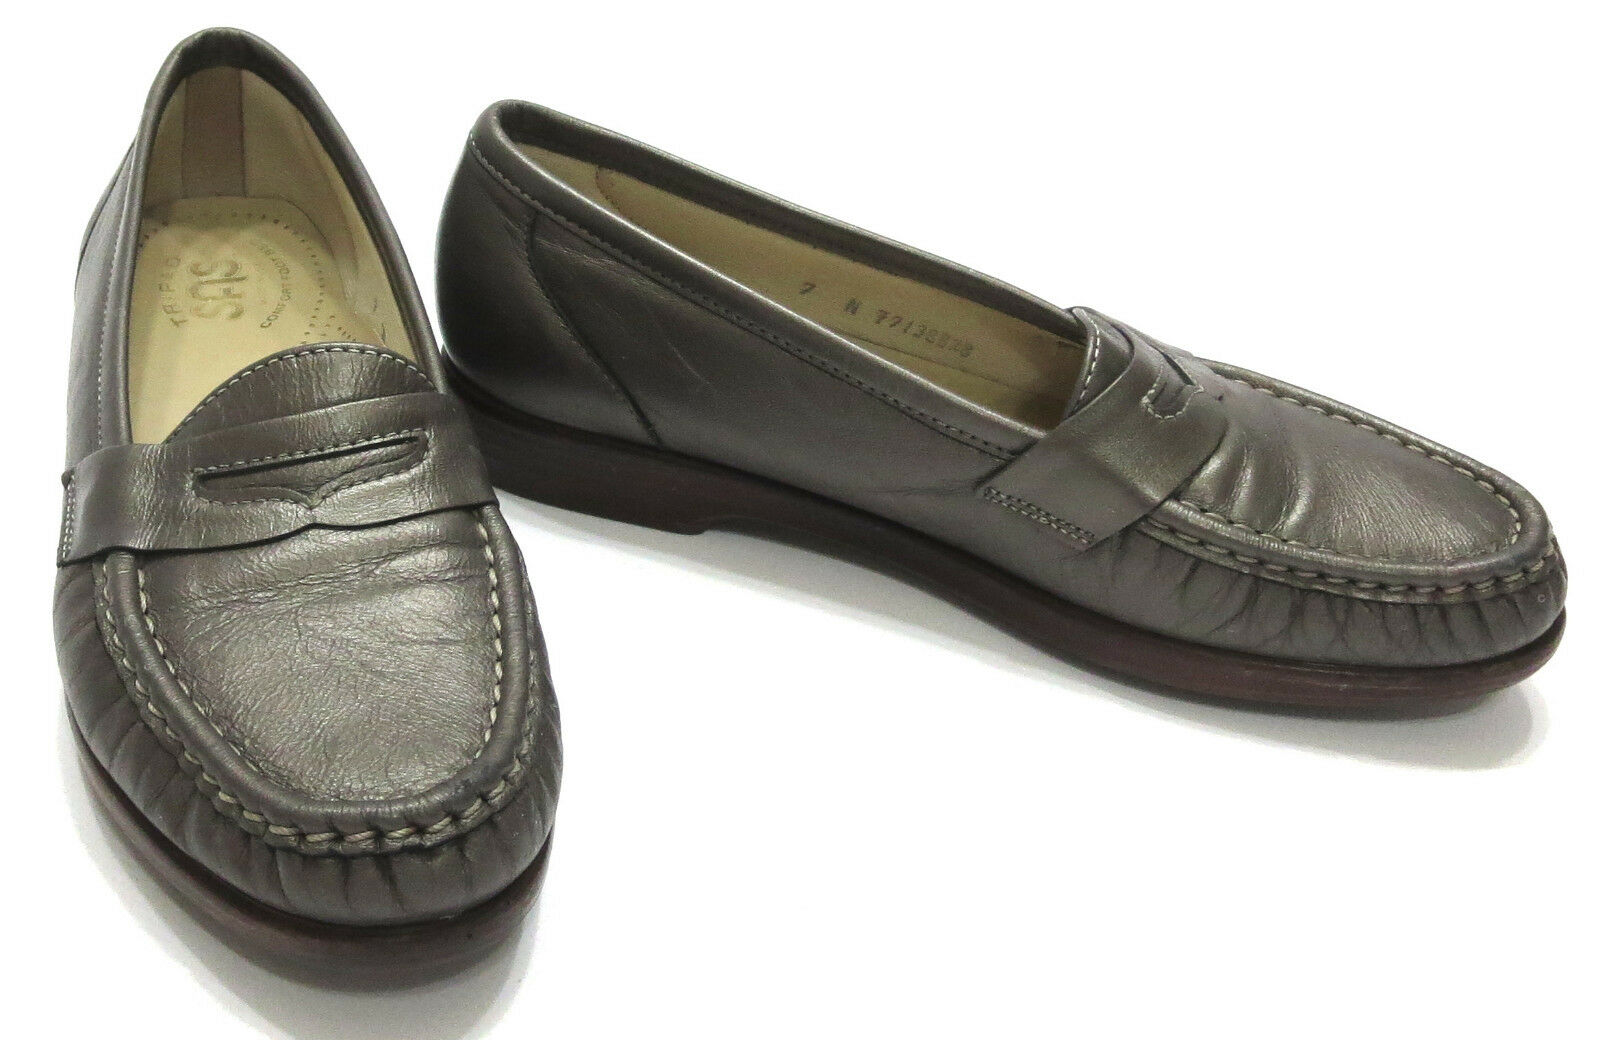 SAS Tripad Comfort Womens Loafer 7 N Pewter Penny Leather Slip On Shoes USA